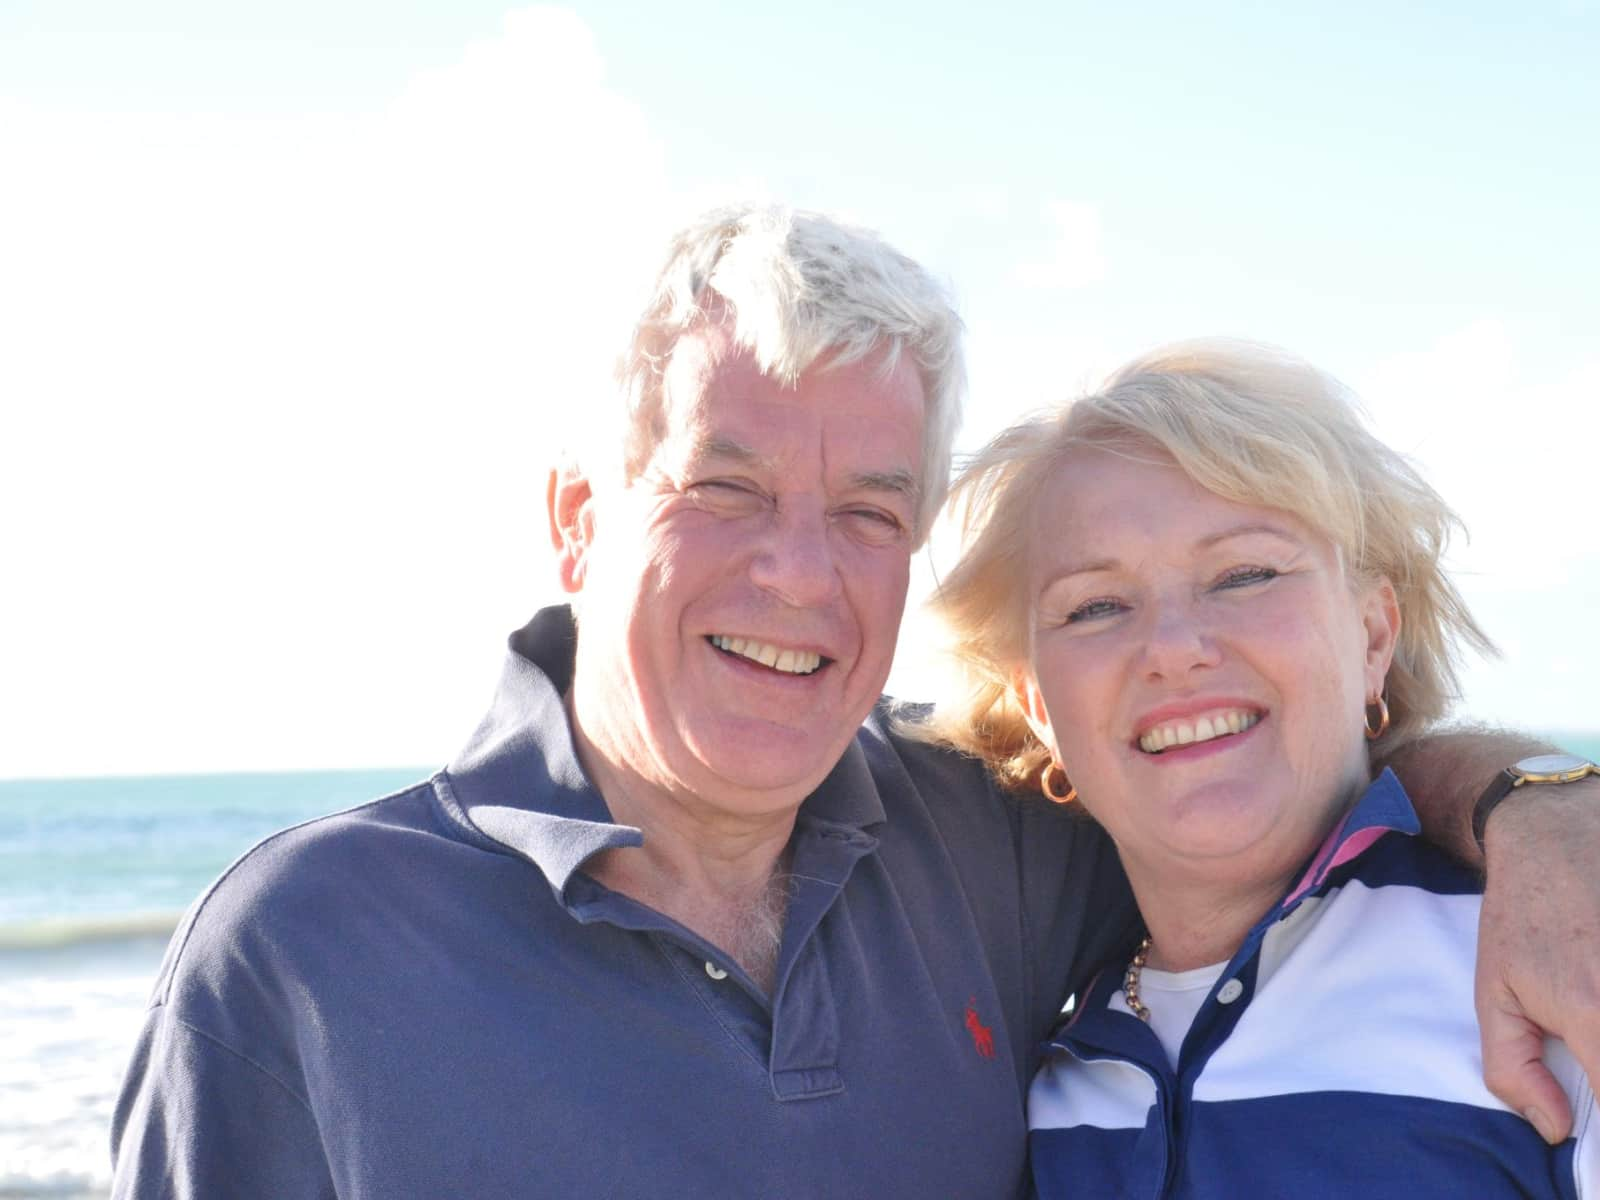 Anne & philip & Anne from Adelaide, South Australia, Australia